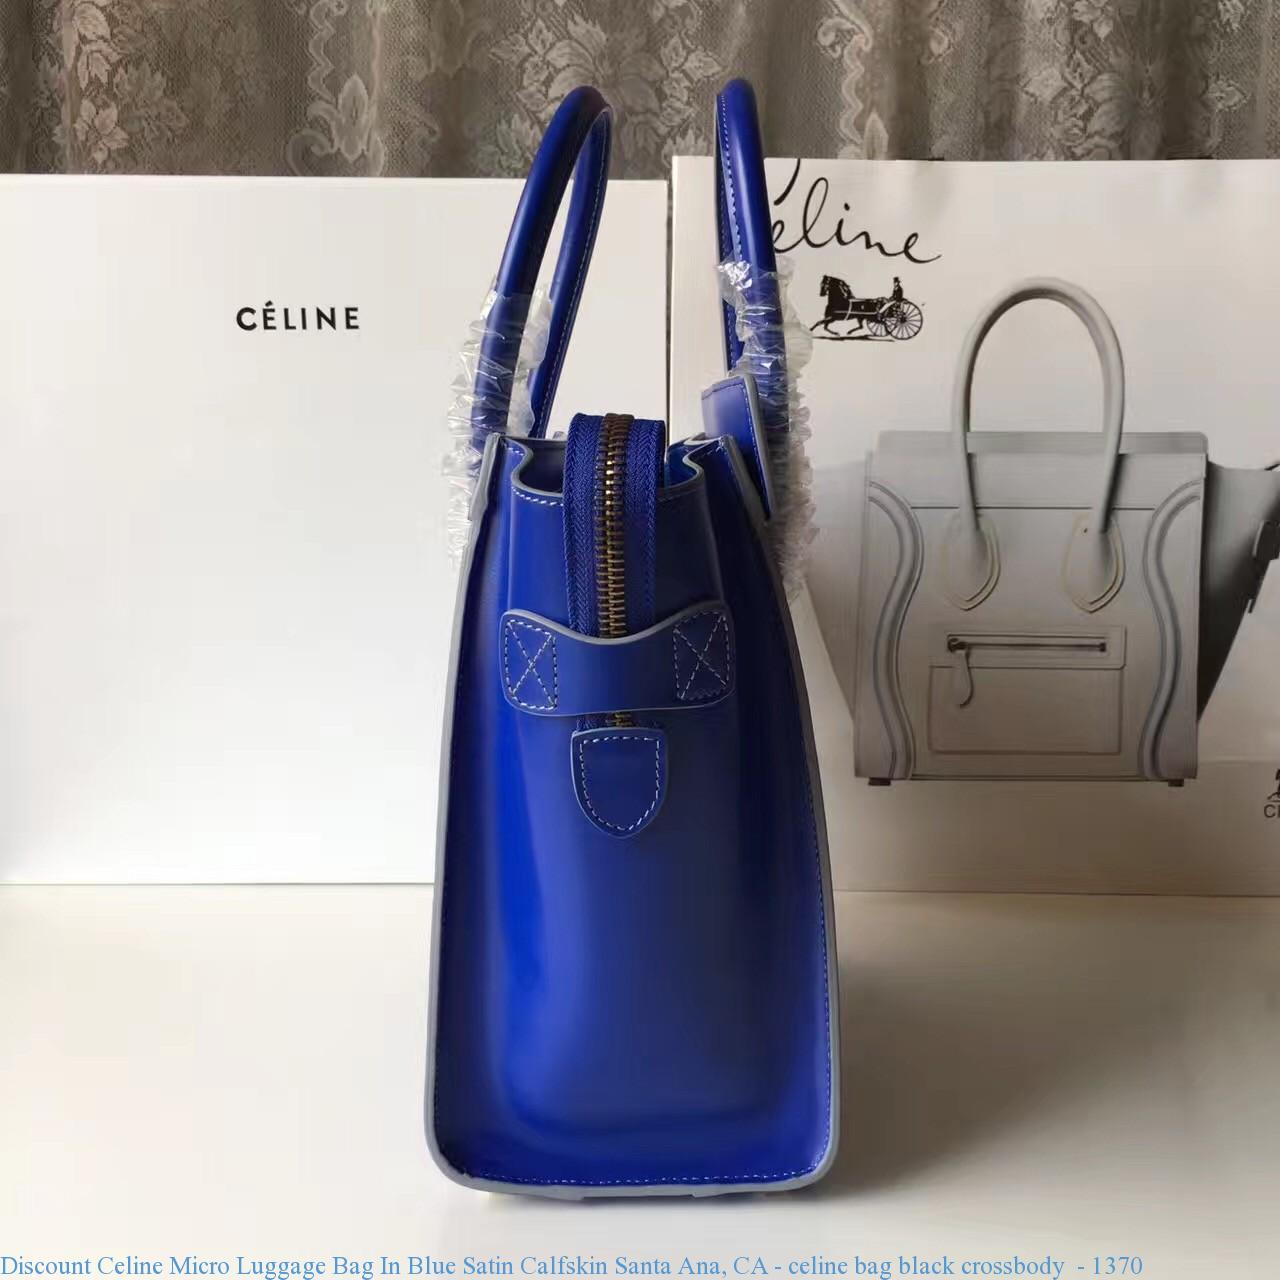 11440333da Discount Celine Micro Luggage Bag In Blue Satin Calfskin Santa Ana ...